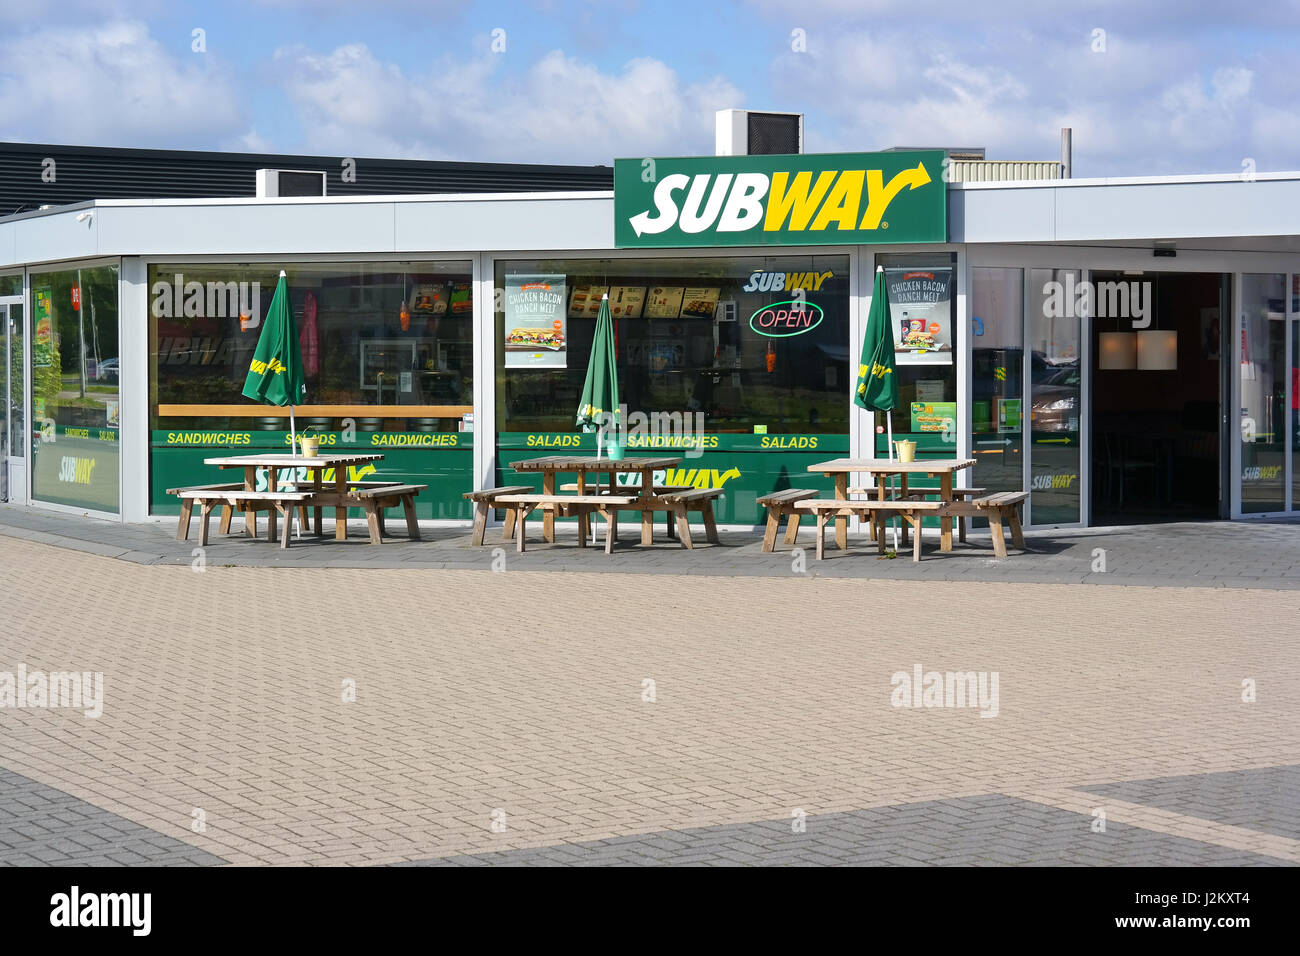 Unoccupied sidewalk cafe of a Subway Restaurant - Stock Image